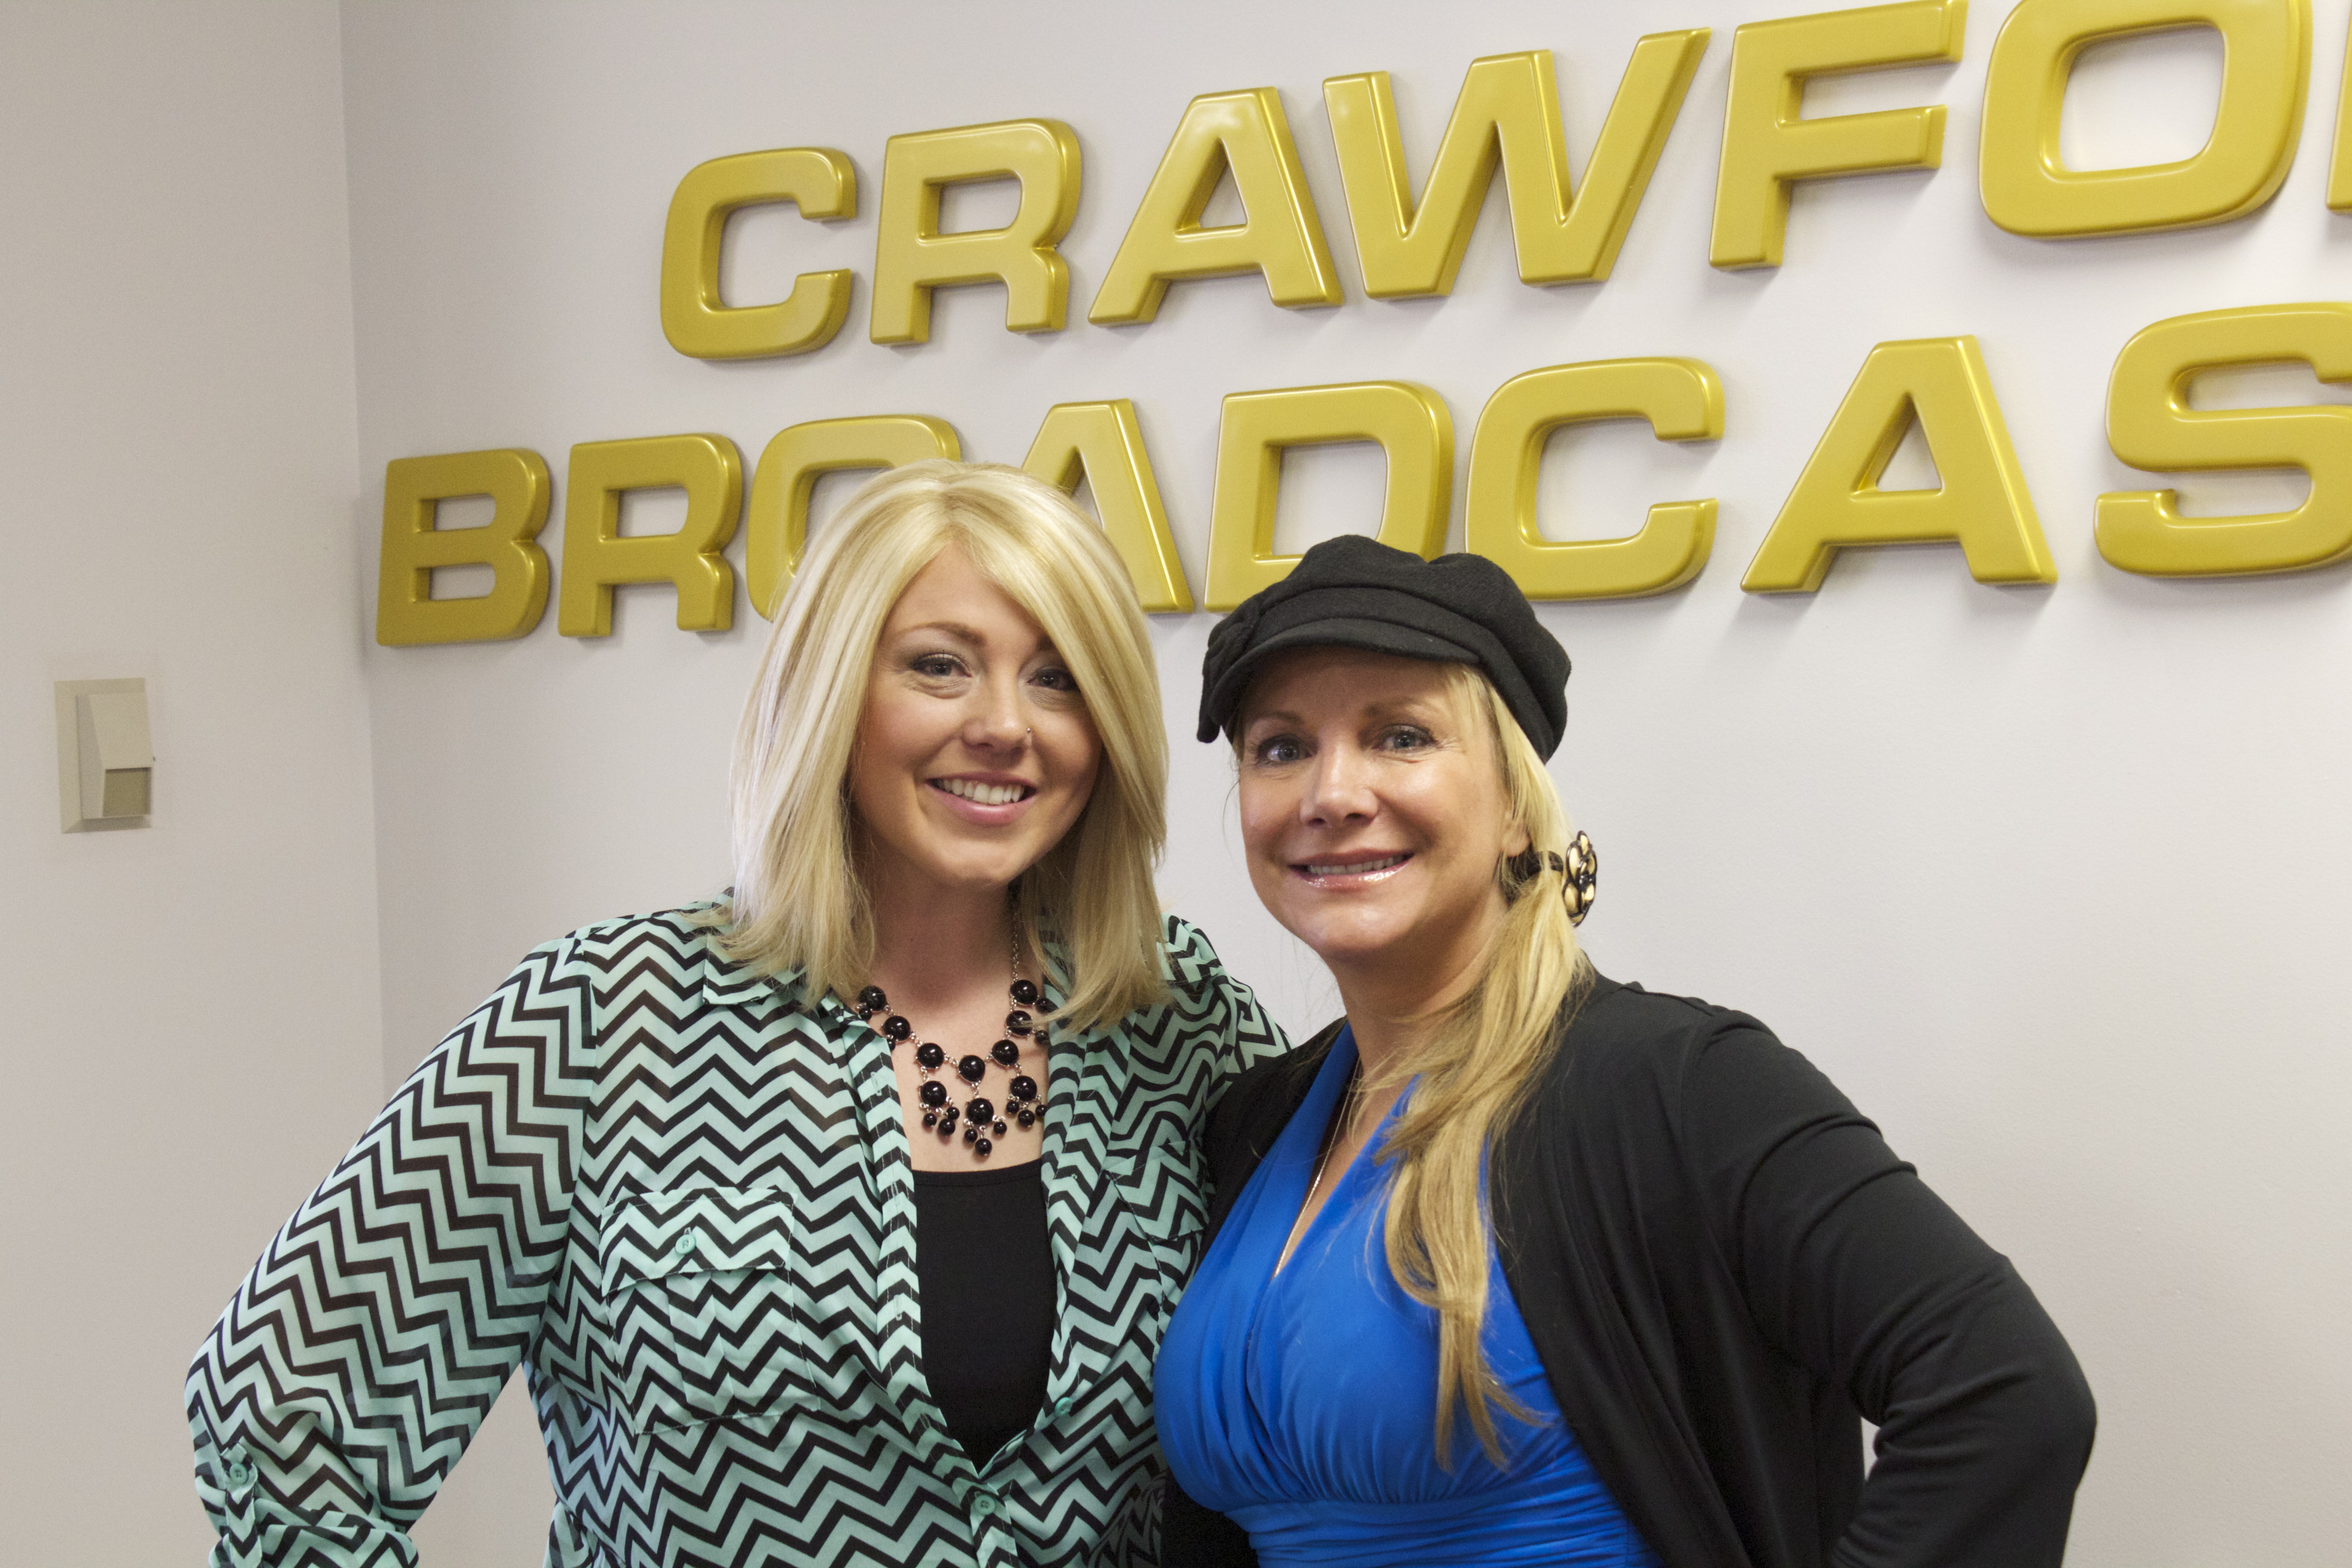 Stephanie and Angie after a great show on 810 KLVZ The Good News! (March 2013)